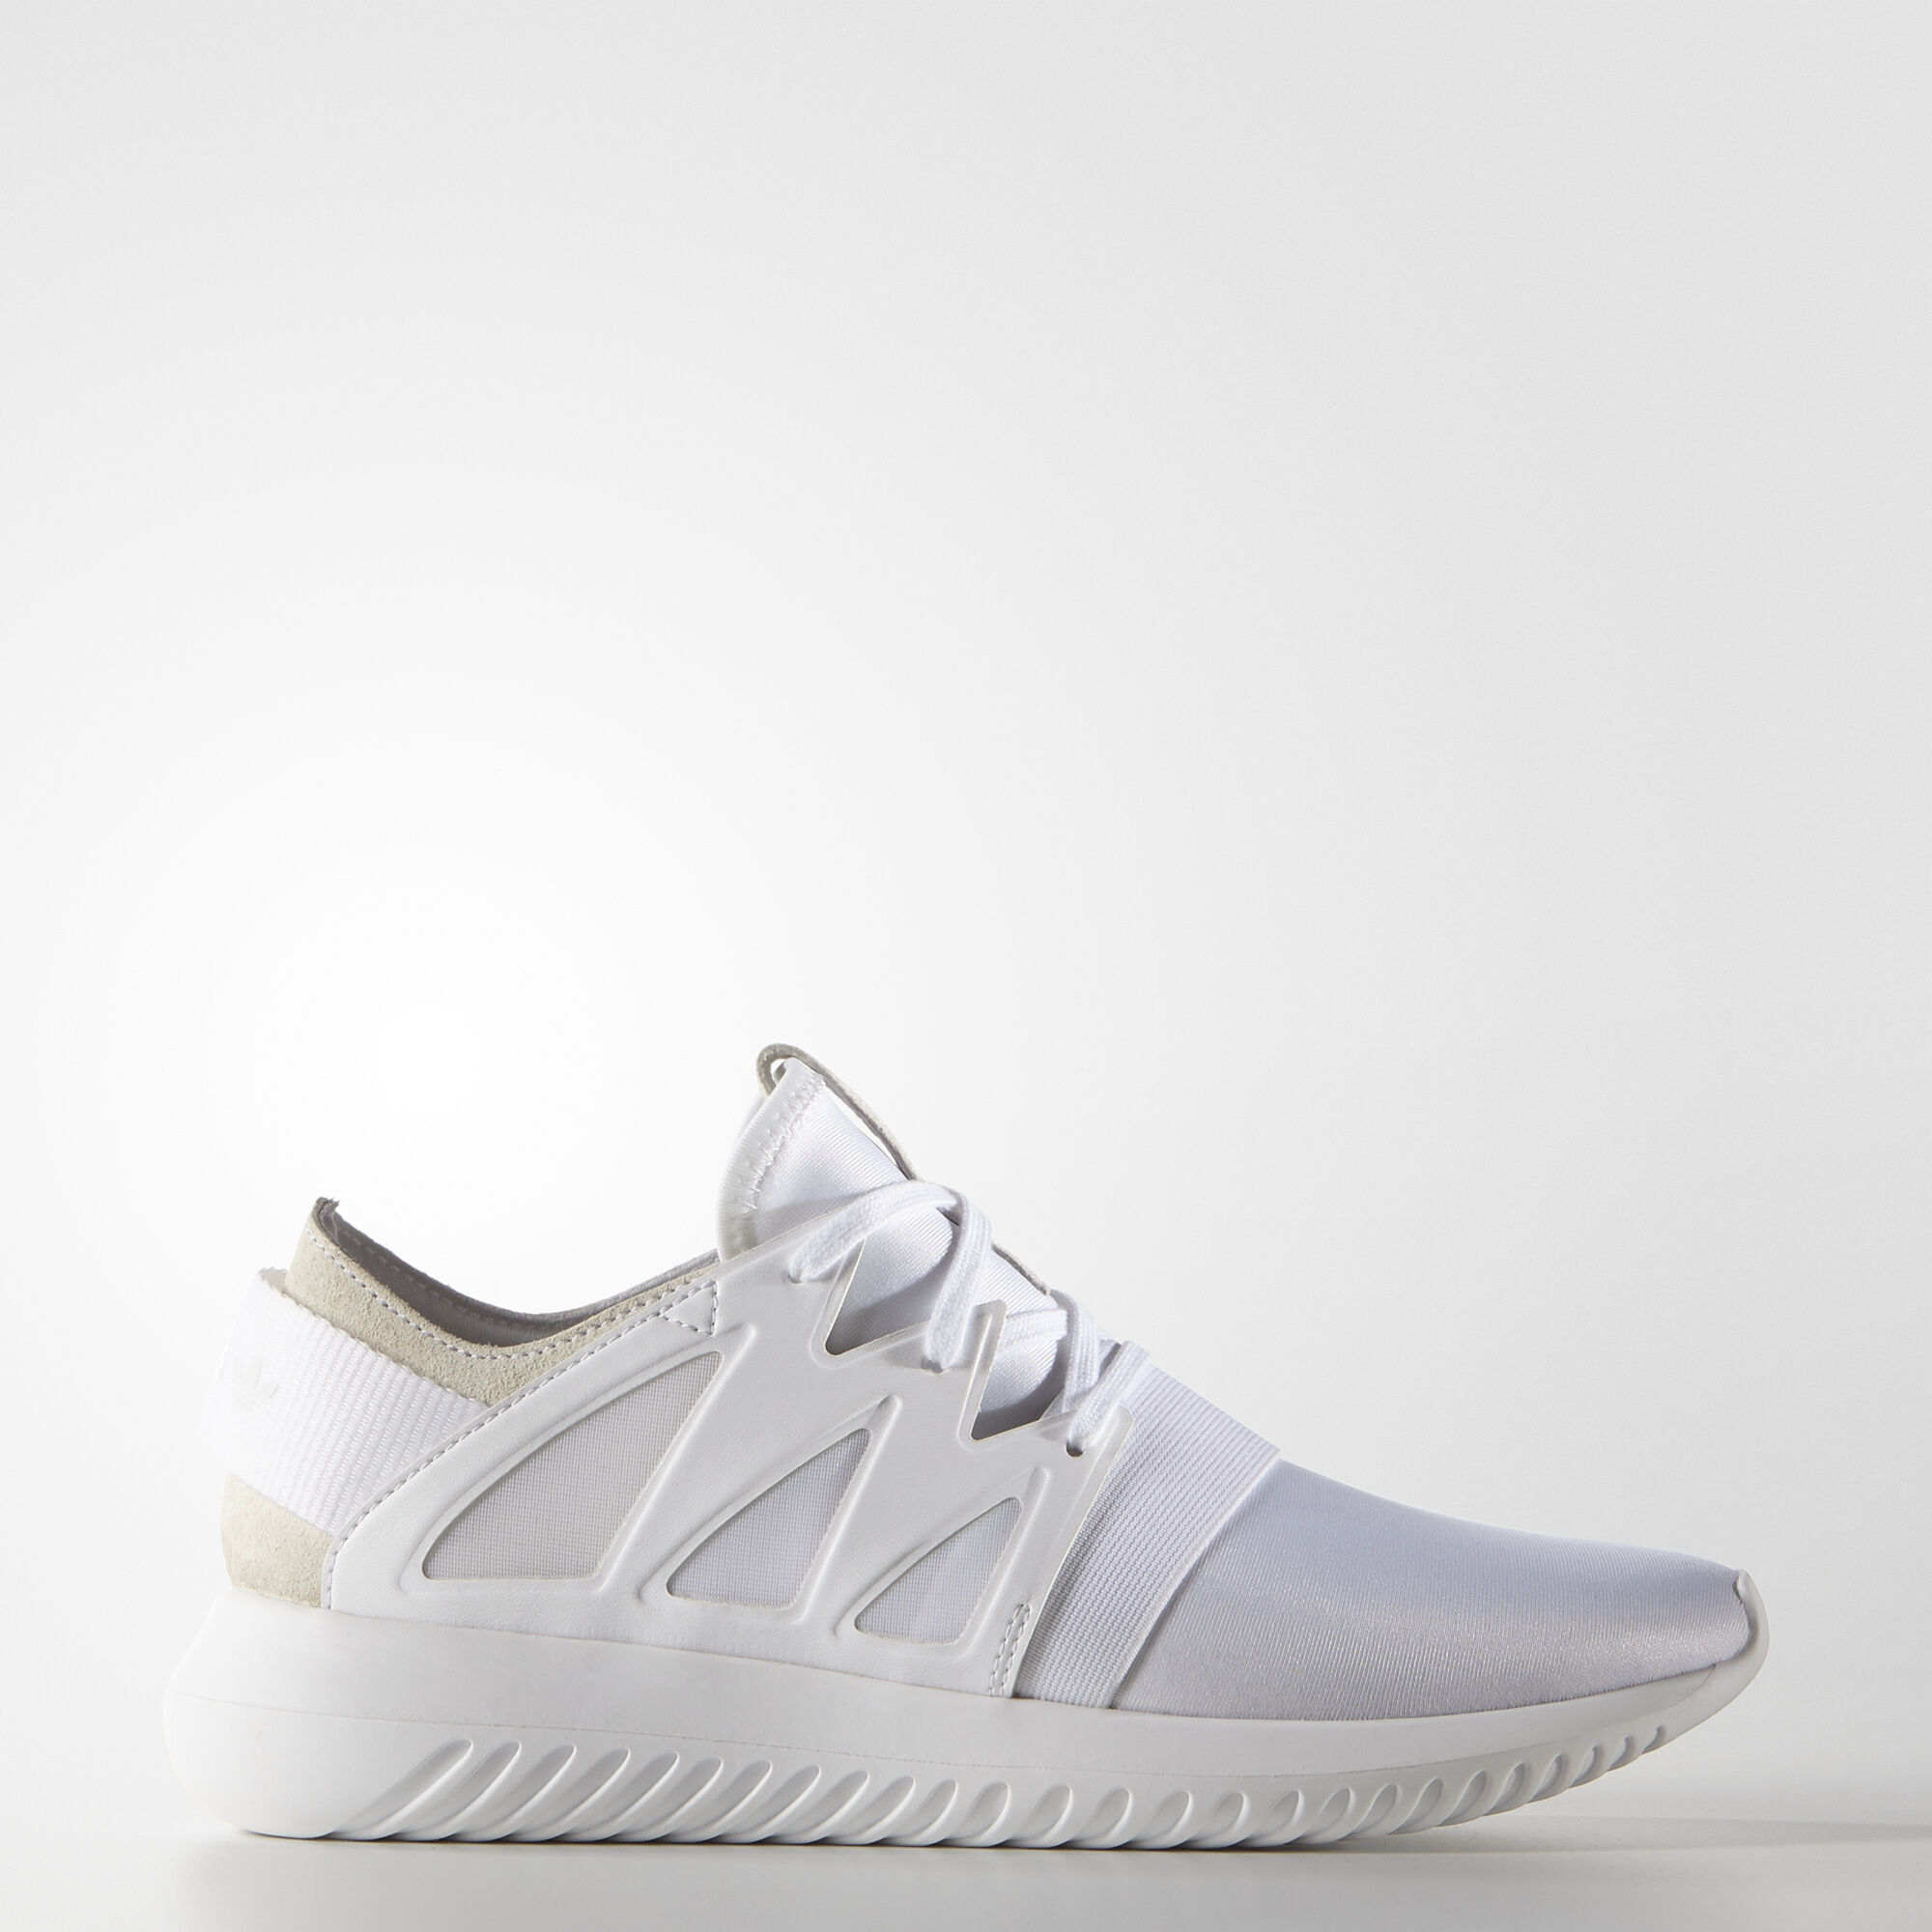 adidas original tubular price